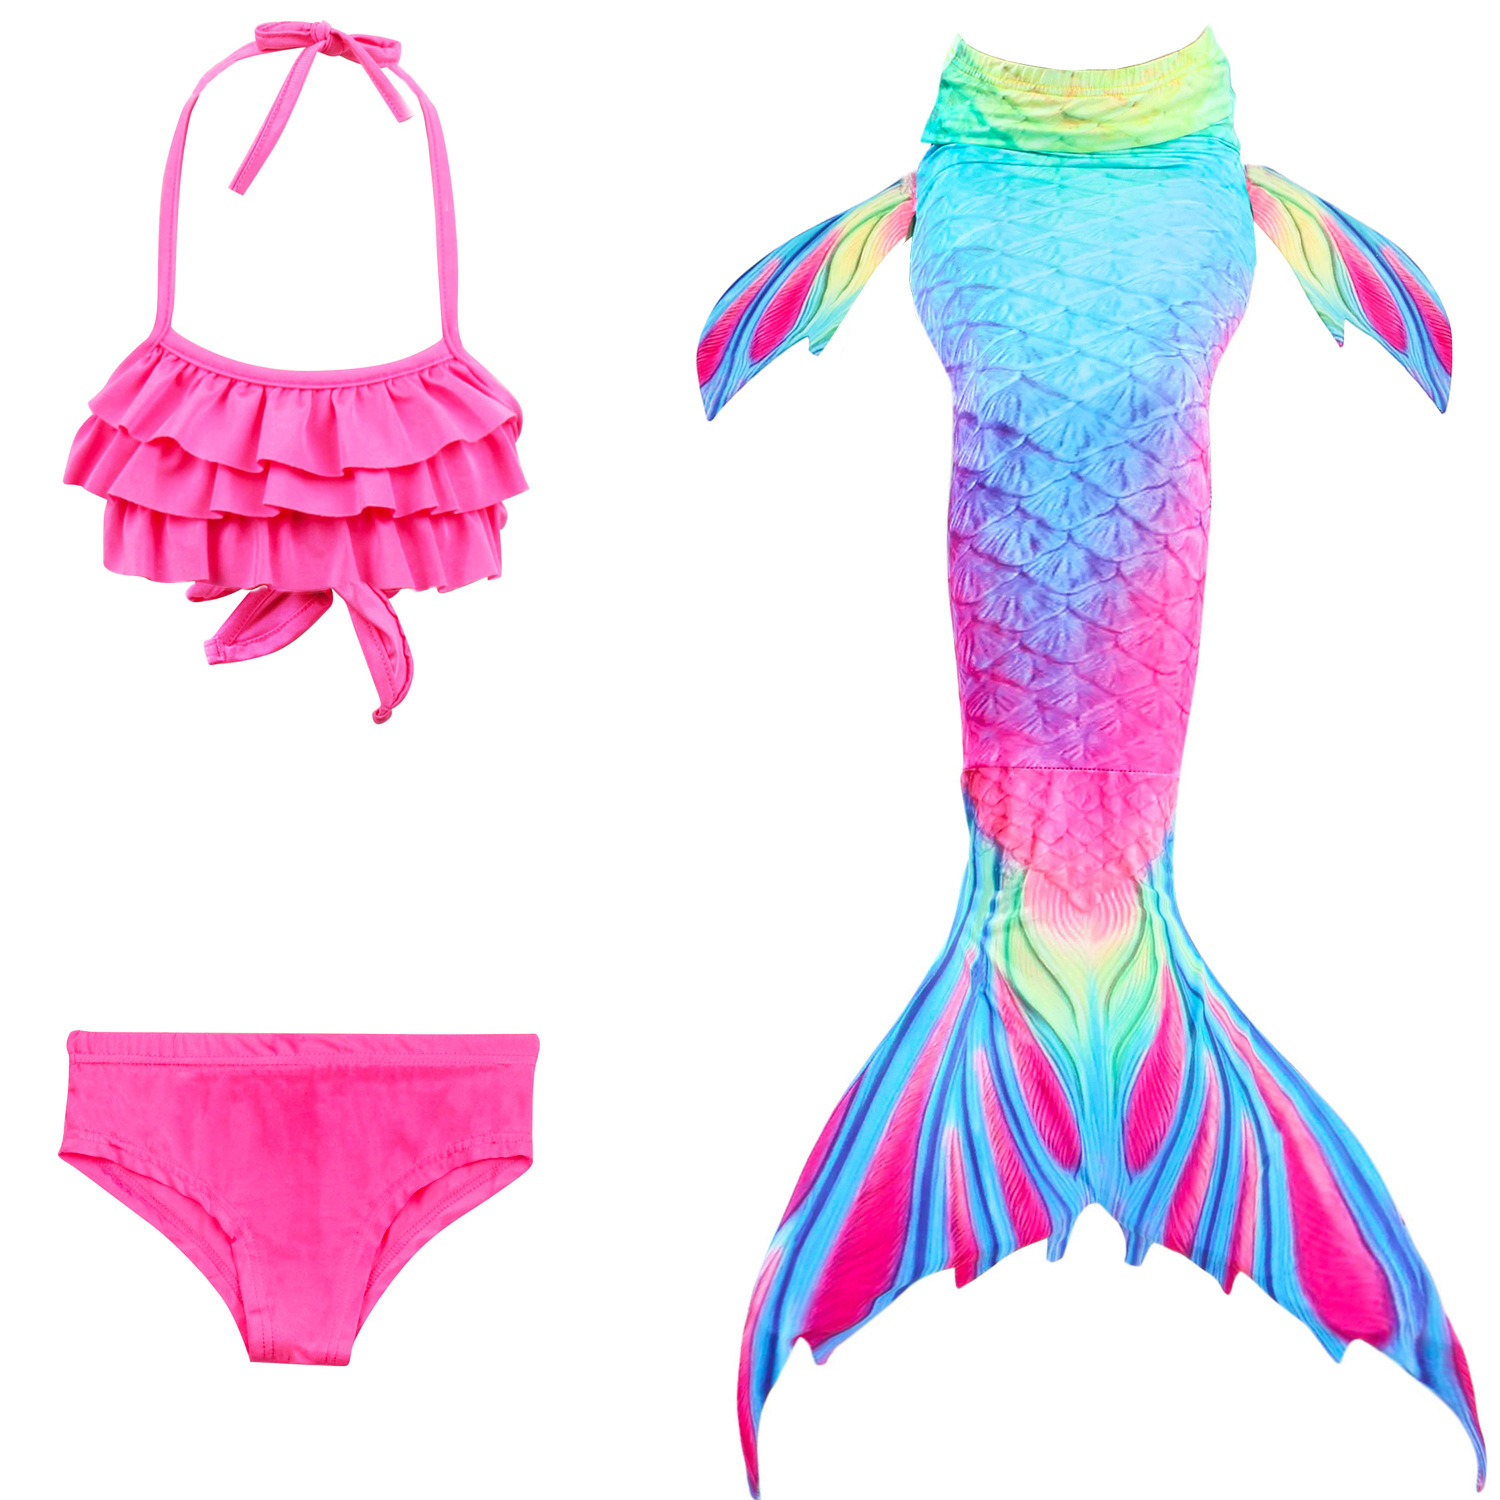 Kids Princess Mermaid Tail Costume Bikini Girls Mermaid Swimsuit Bikinis Girl Mermaid Tail Swimsuit Beach Dress Cosplay